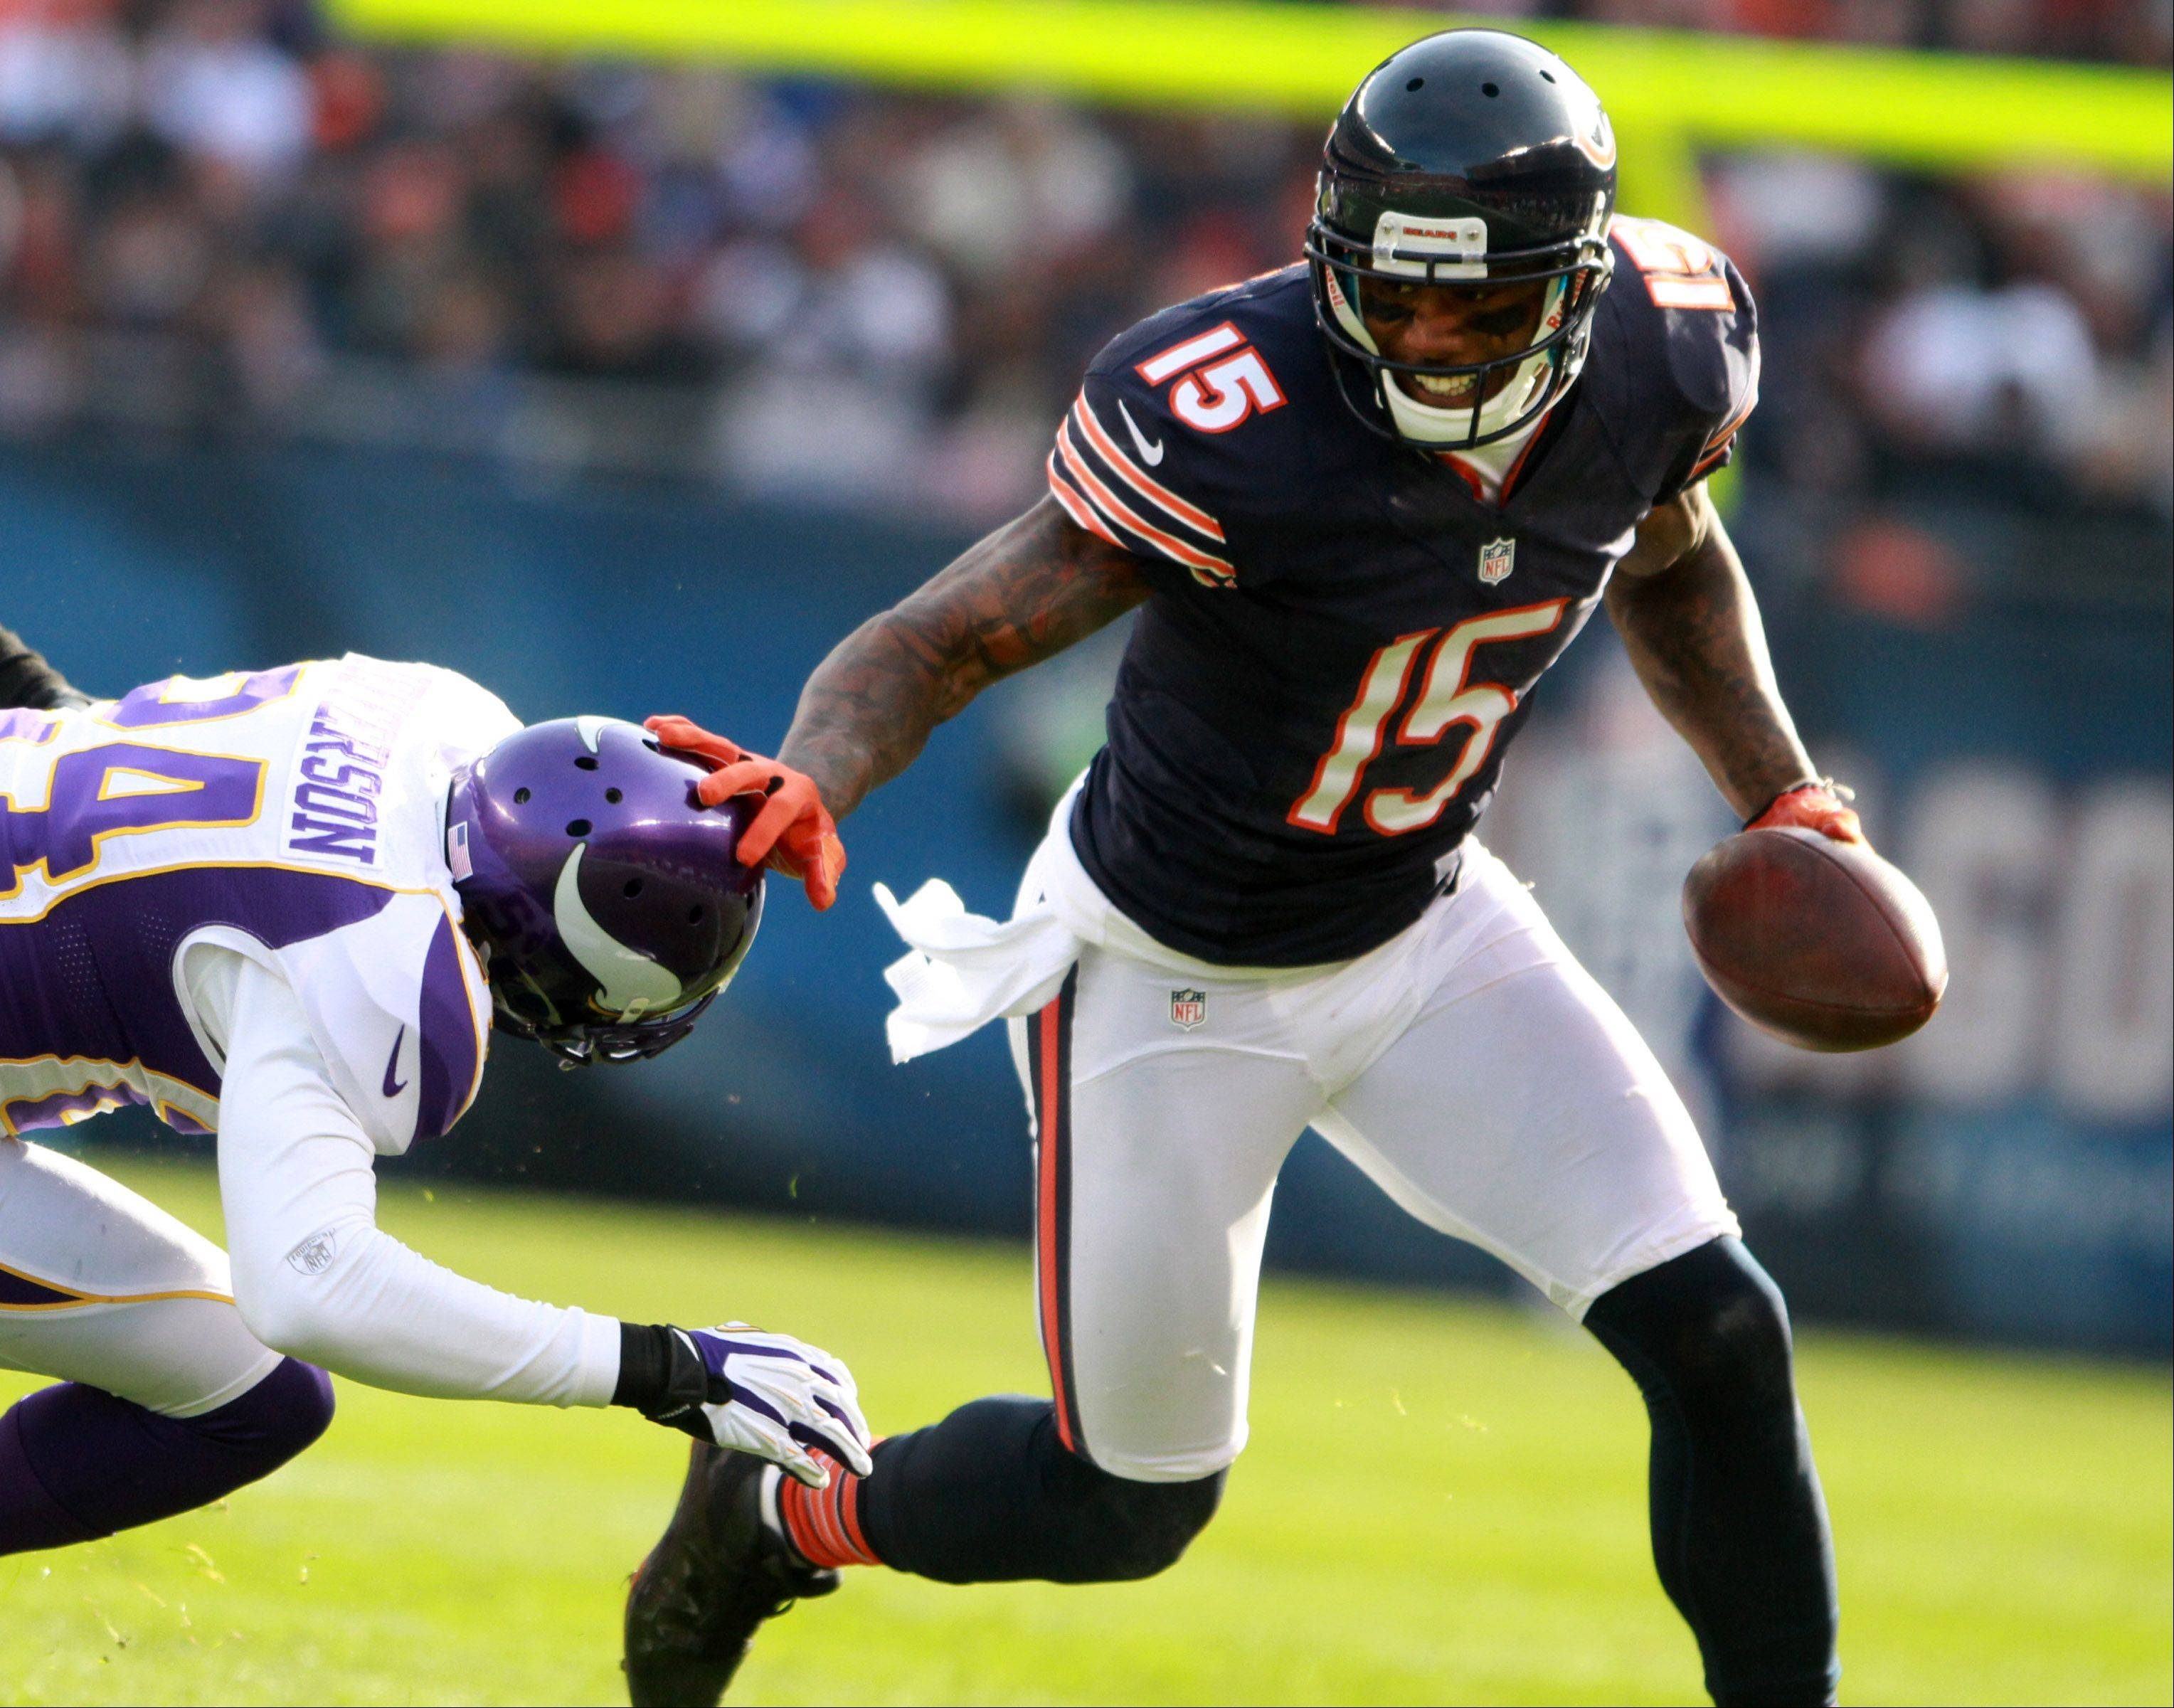 Brandon Marshall wants to play up from his previous playing weight of 230 pounds this season with the hope that he can break more tackles, like the one being attempted here by Minnesota's A.J. Jefferson last season.